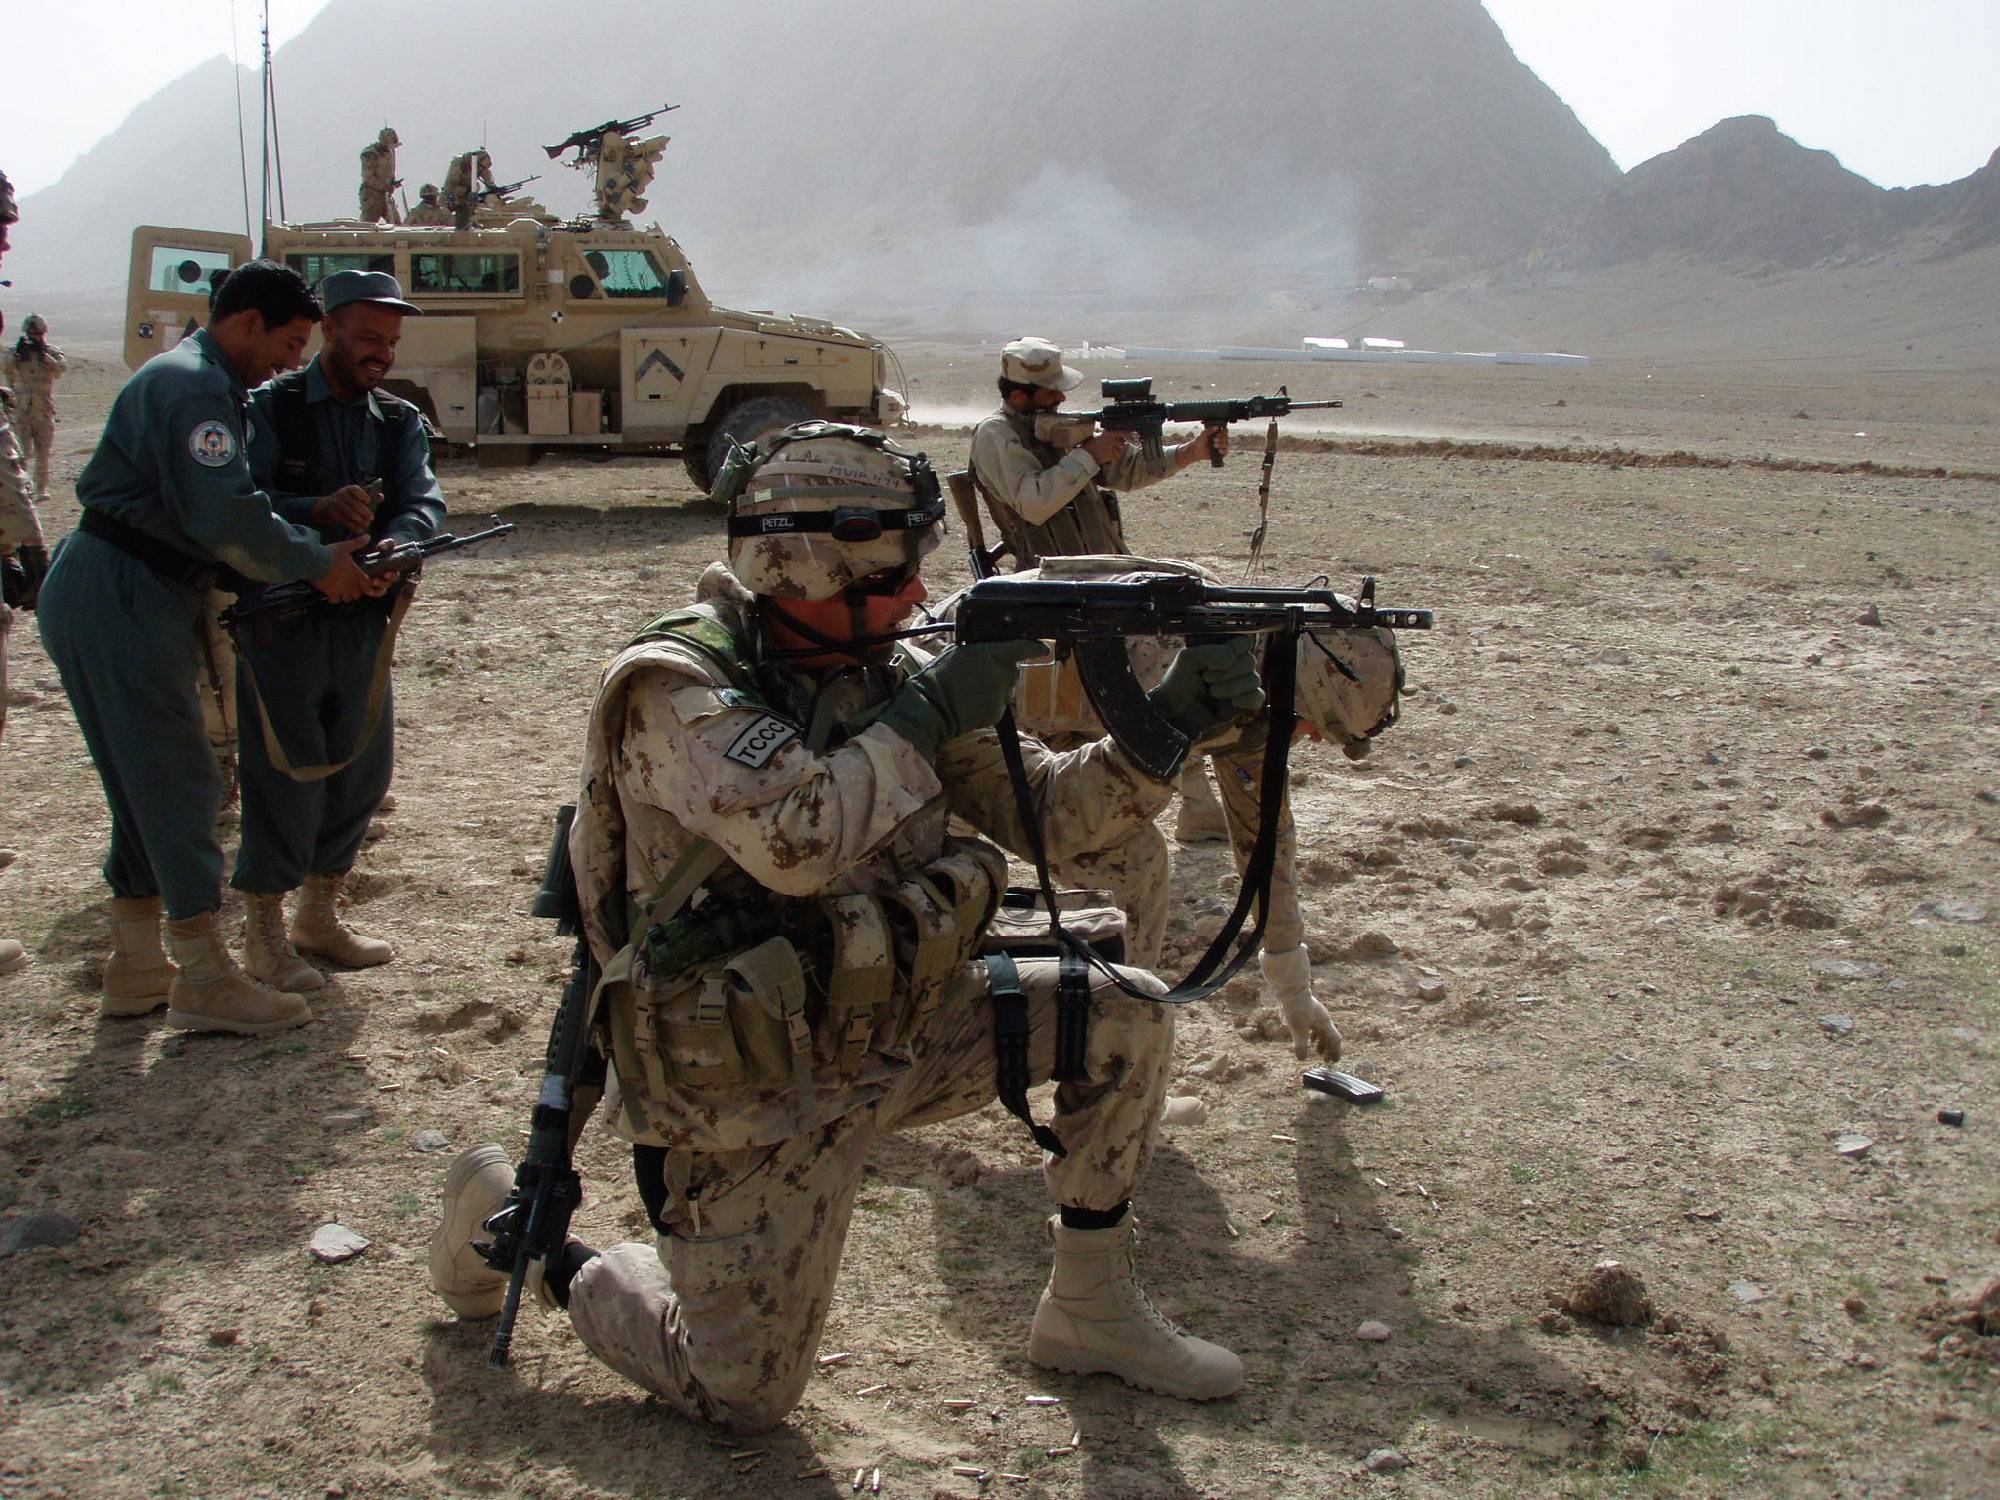 Training shoot with vehicles, our weapons and Afghan National Police weapons, desert north of Kandahar city, March 2008.